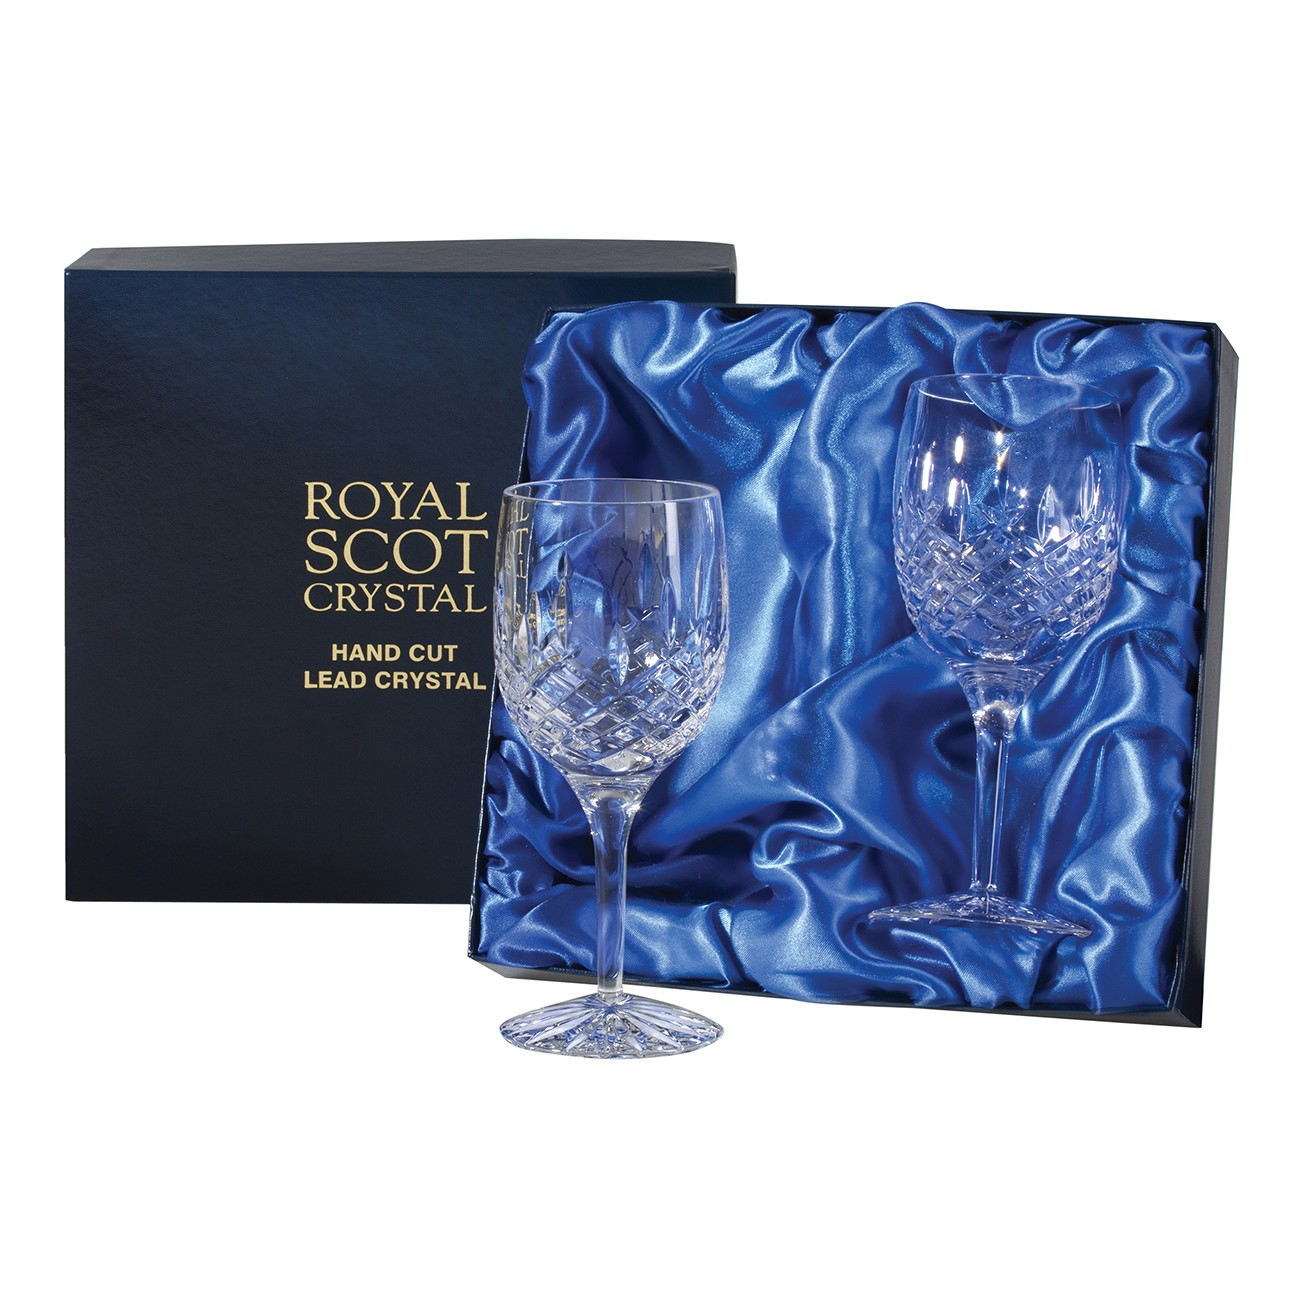 2 royal scot crystal wine glasses london presentation boxed. Black Bedroom Furniture Sets. Home Design Ideas